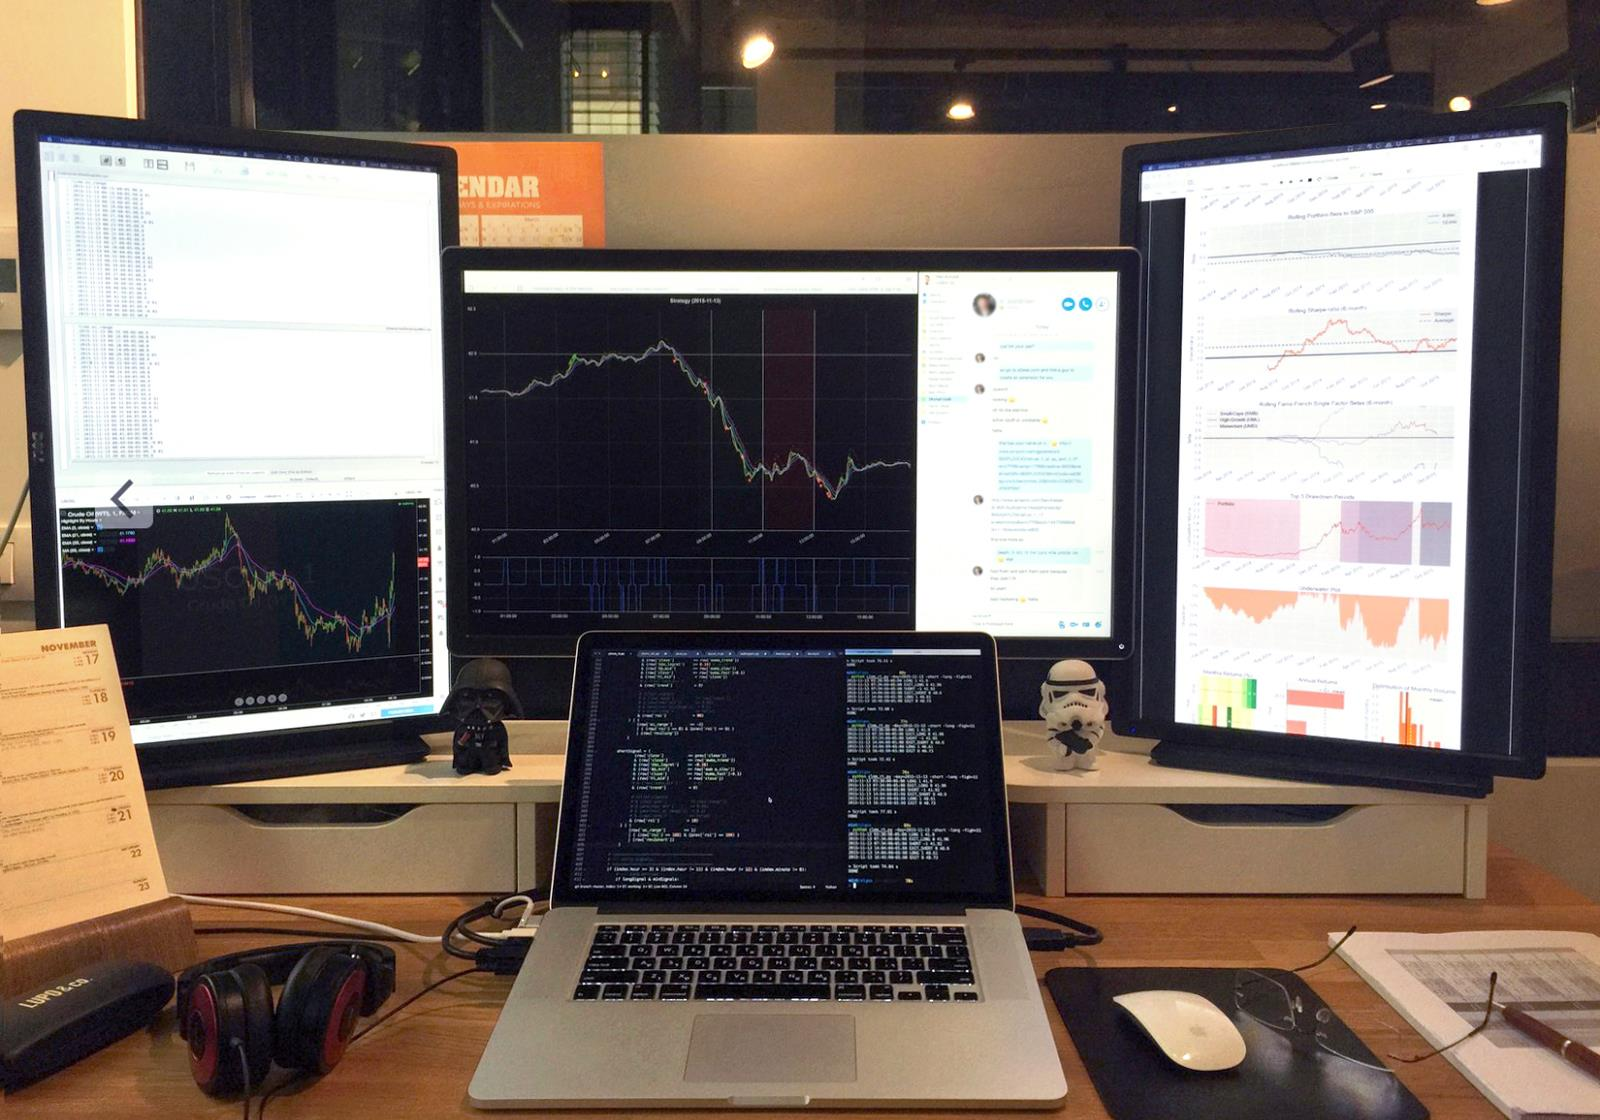 Reliably download historical market data from Yahoo! Finance